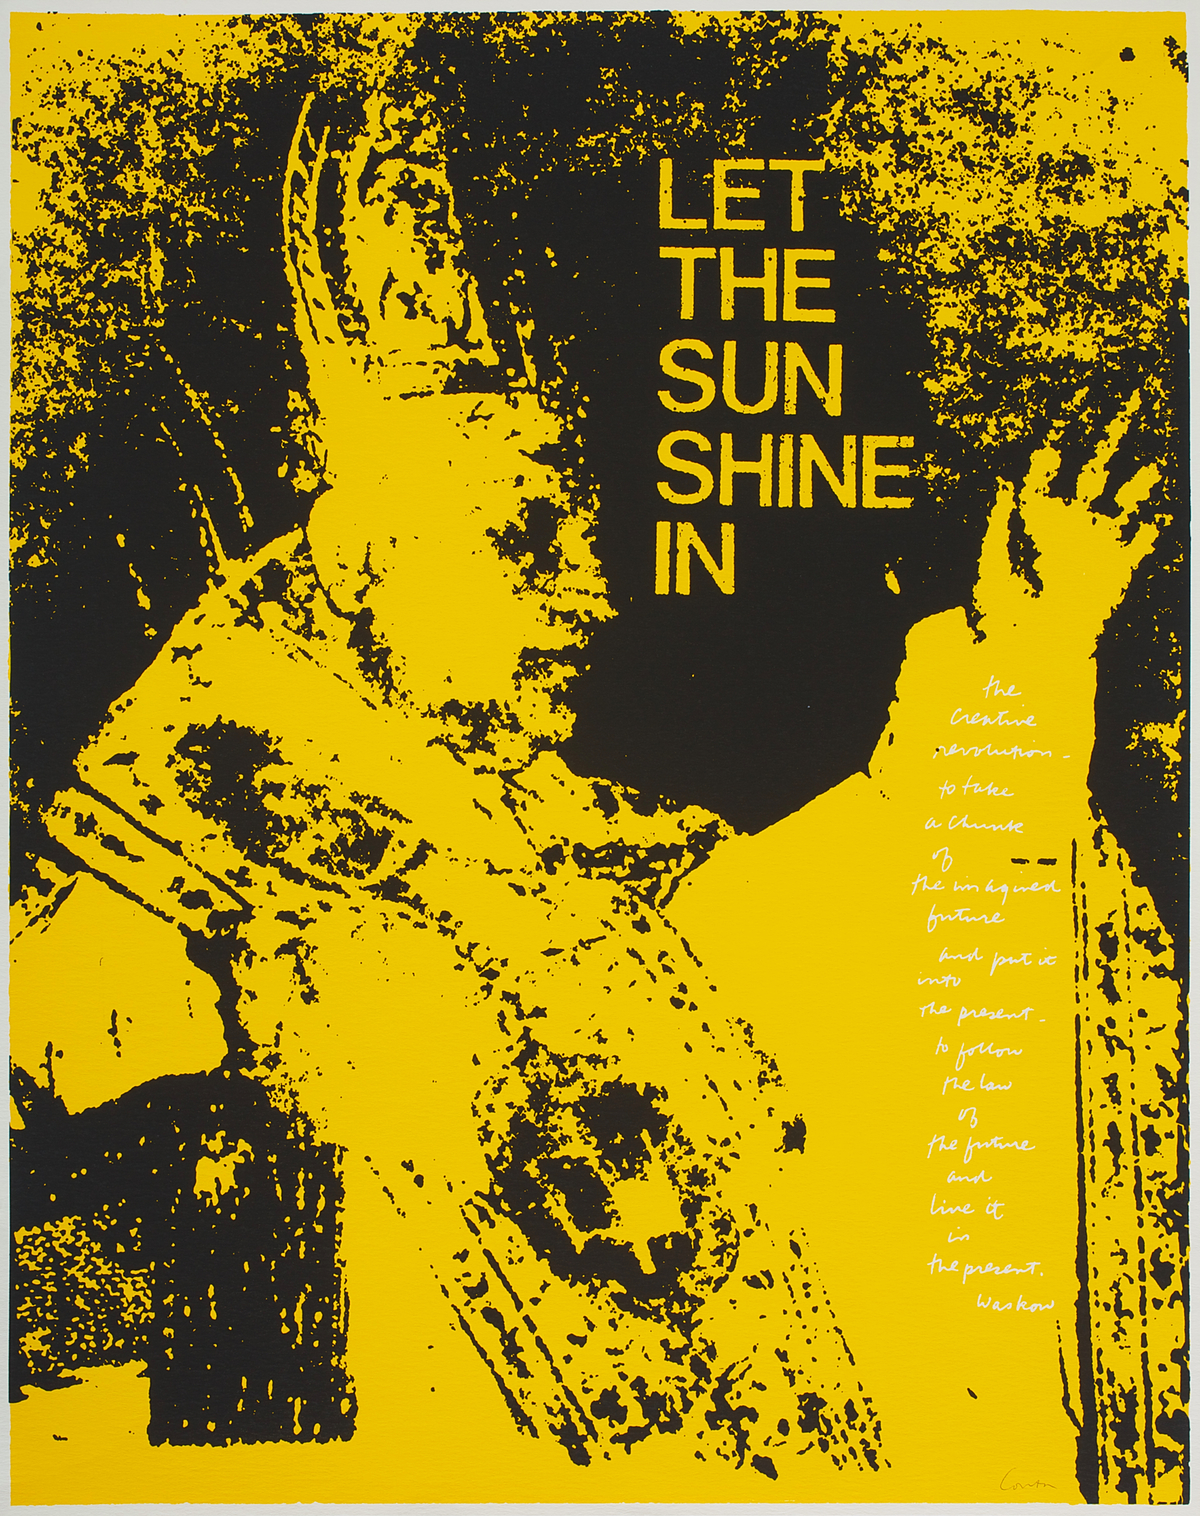 let the sun shine (1968)